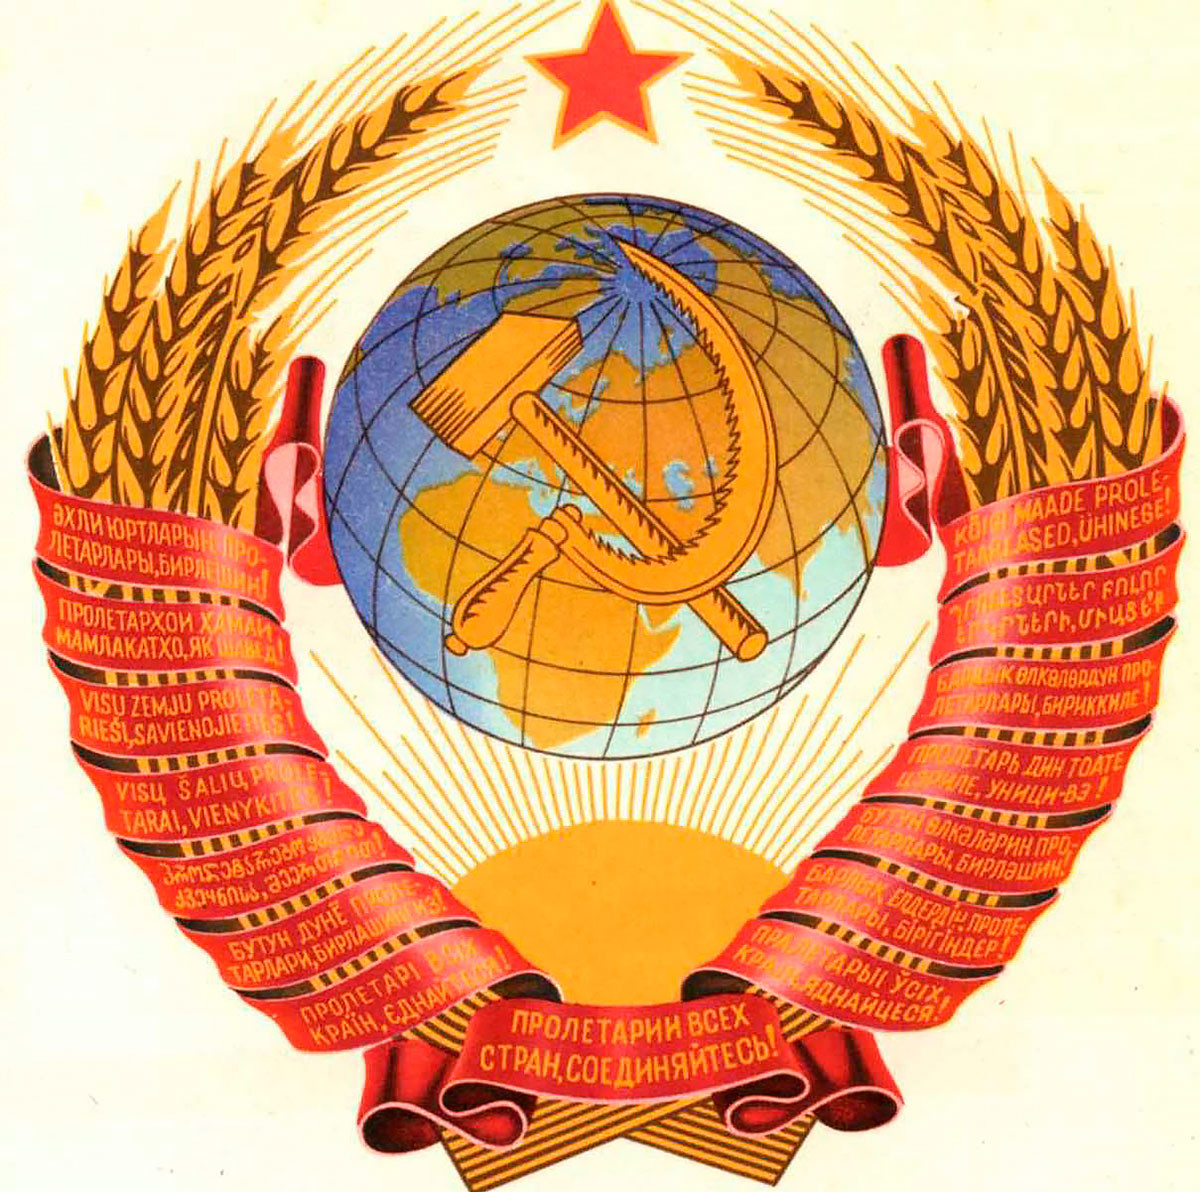 The emblem of the USSR.